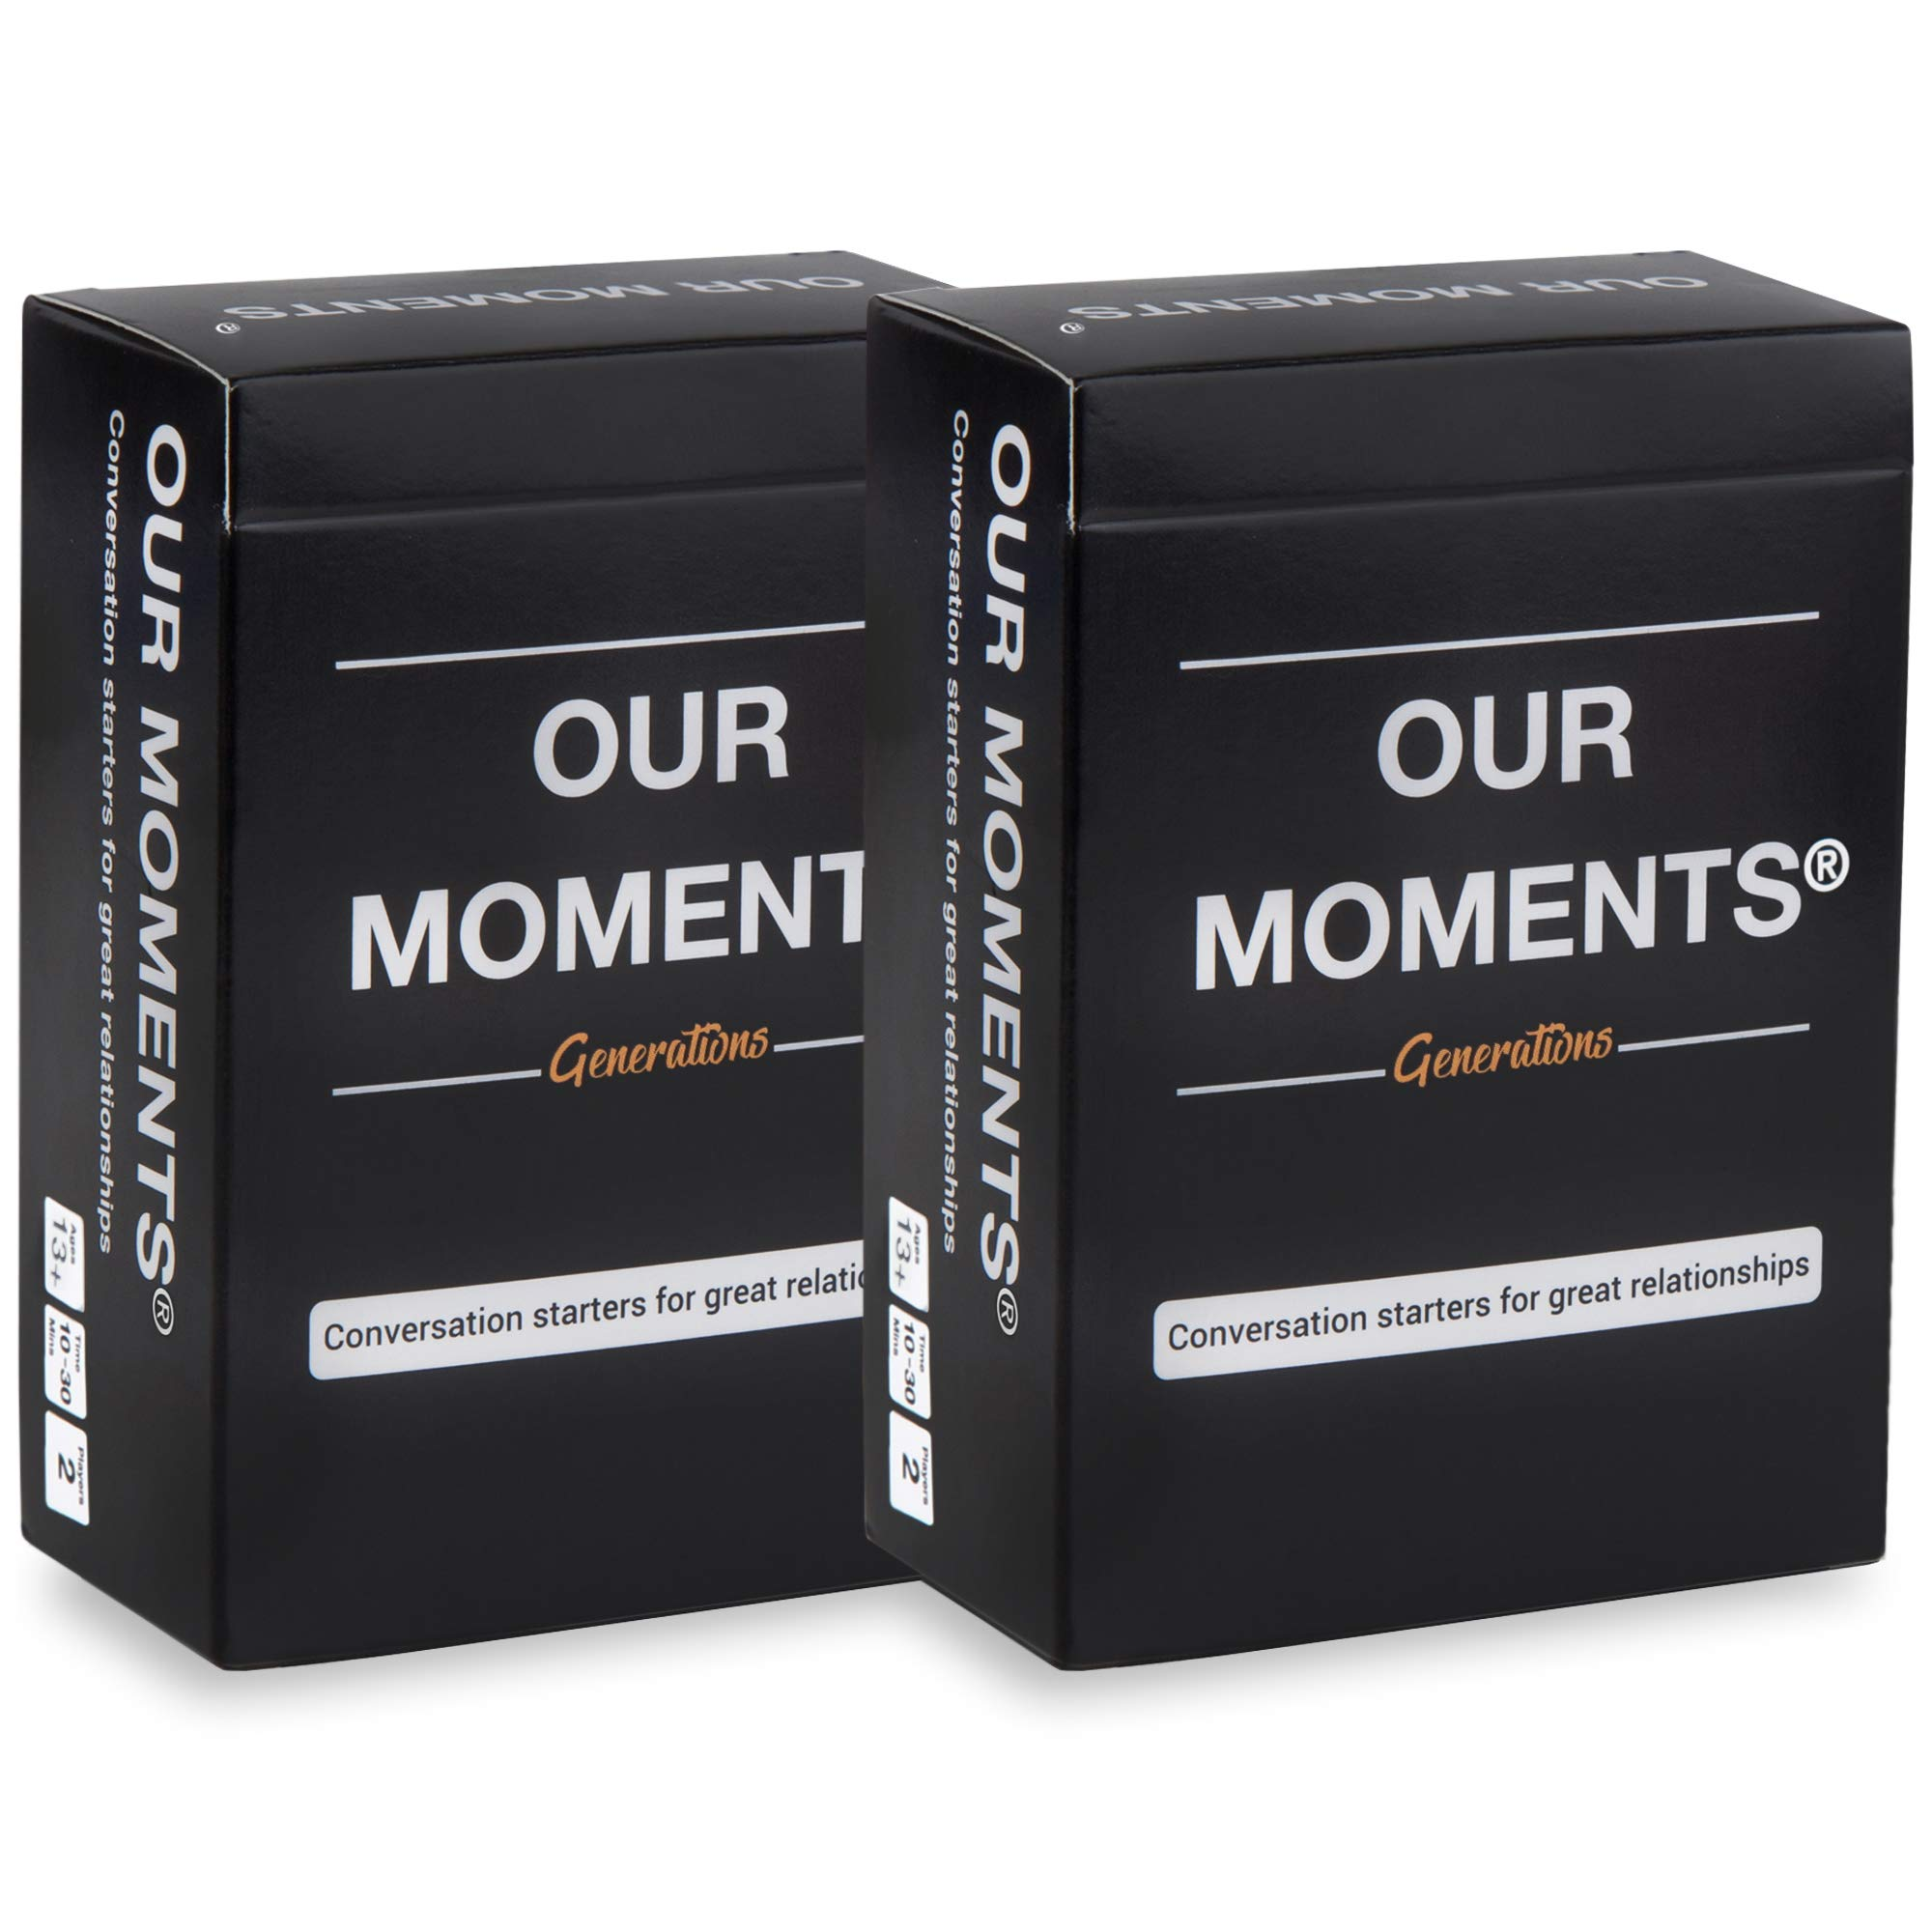 OUR MOMENTS Generations (Bundle of 2): 100 Thought Provoking Conversation Starter Questions. Grandchild to Grandparent - Fun and Meaningful Communication - Bridge The Age Gap to Strong Family Ties